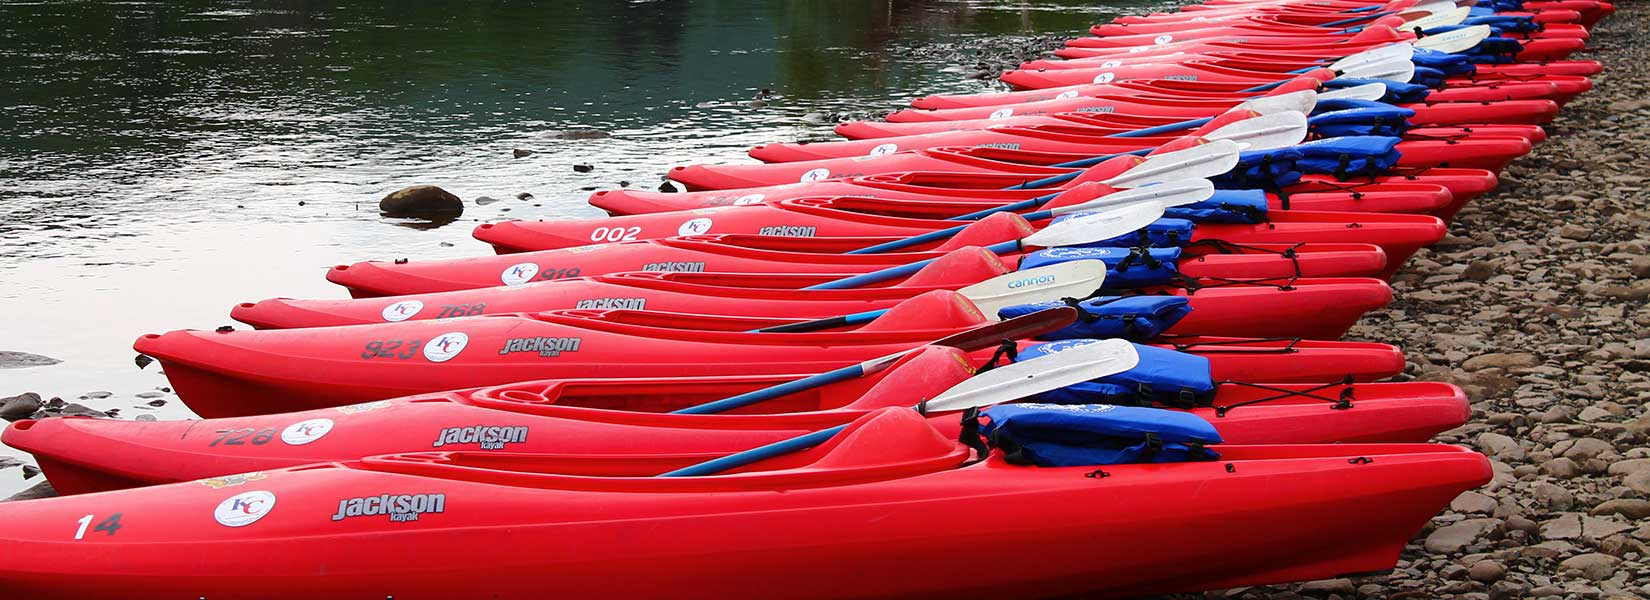 Kayaks lined up on shore banner